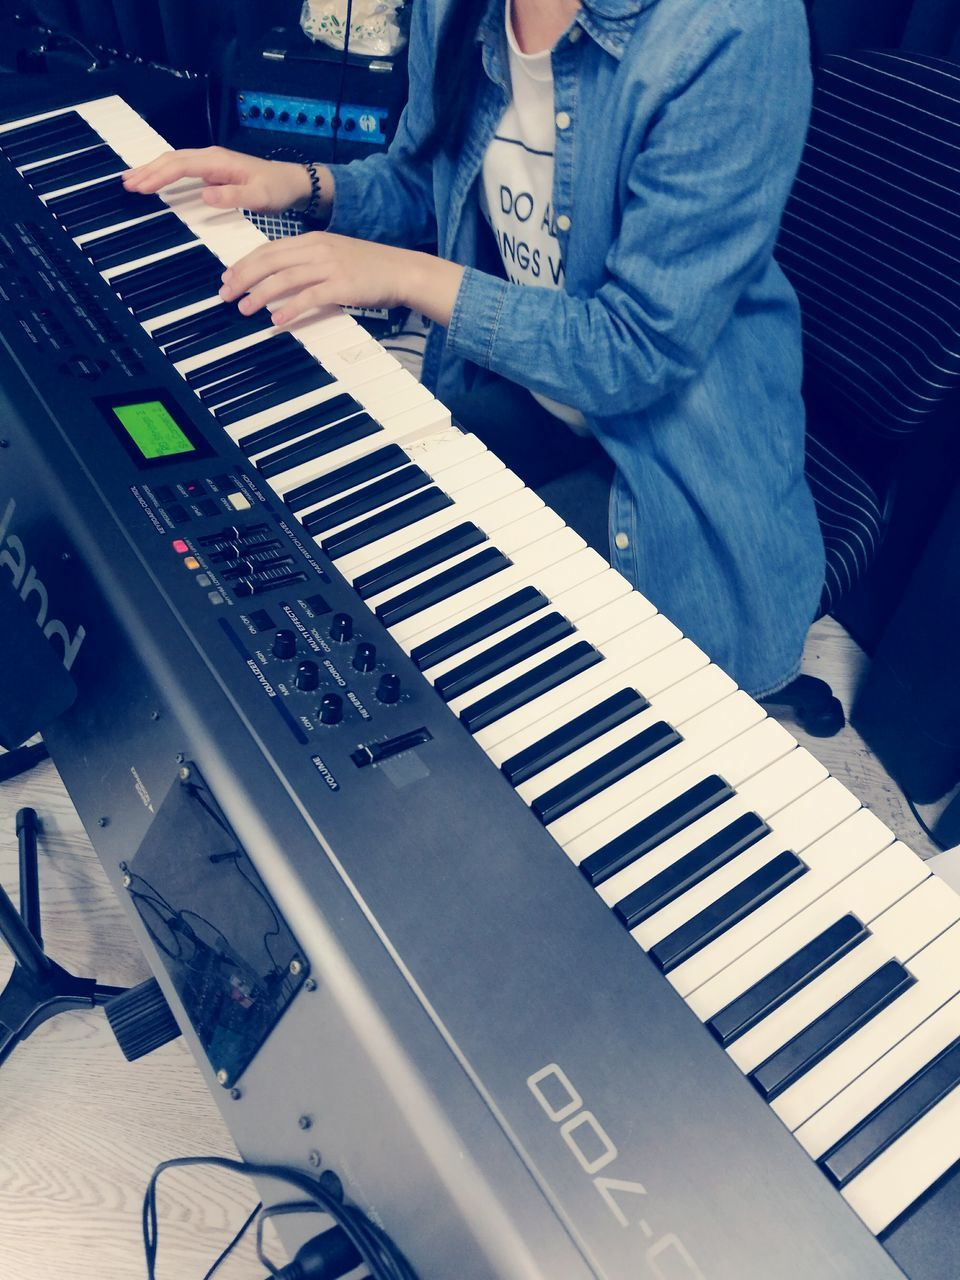 music, musical instrument, piano key, real people, technology, arts culture and entertainment, indoors, musician, playing, midsection, piano, accordion, recording studio, keyboard, one person, close-up, day, people